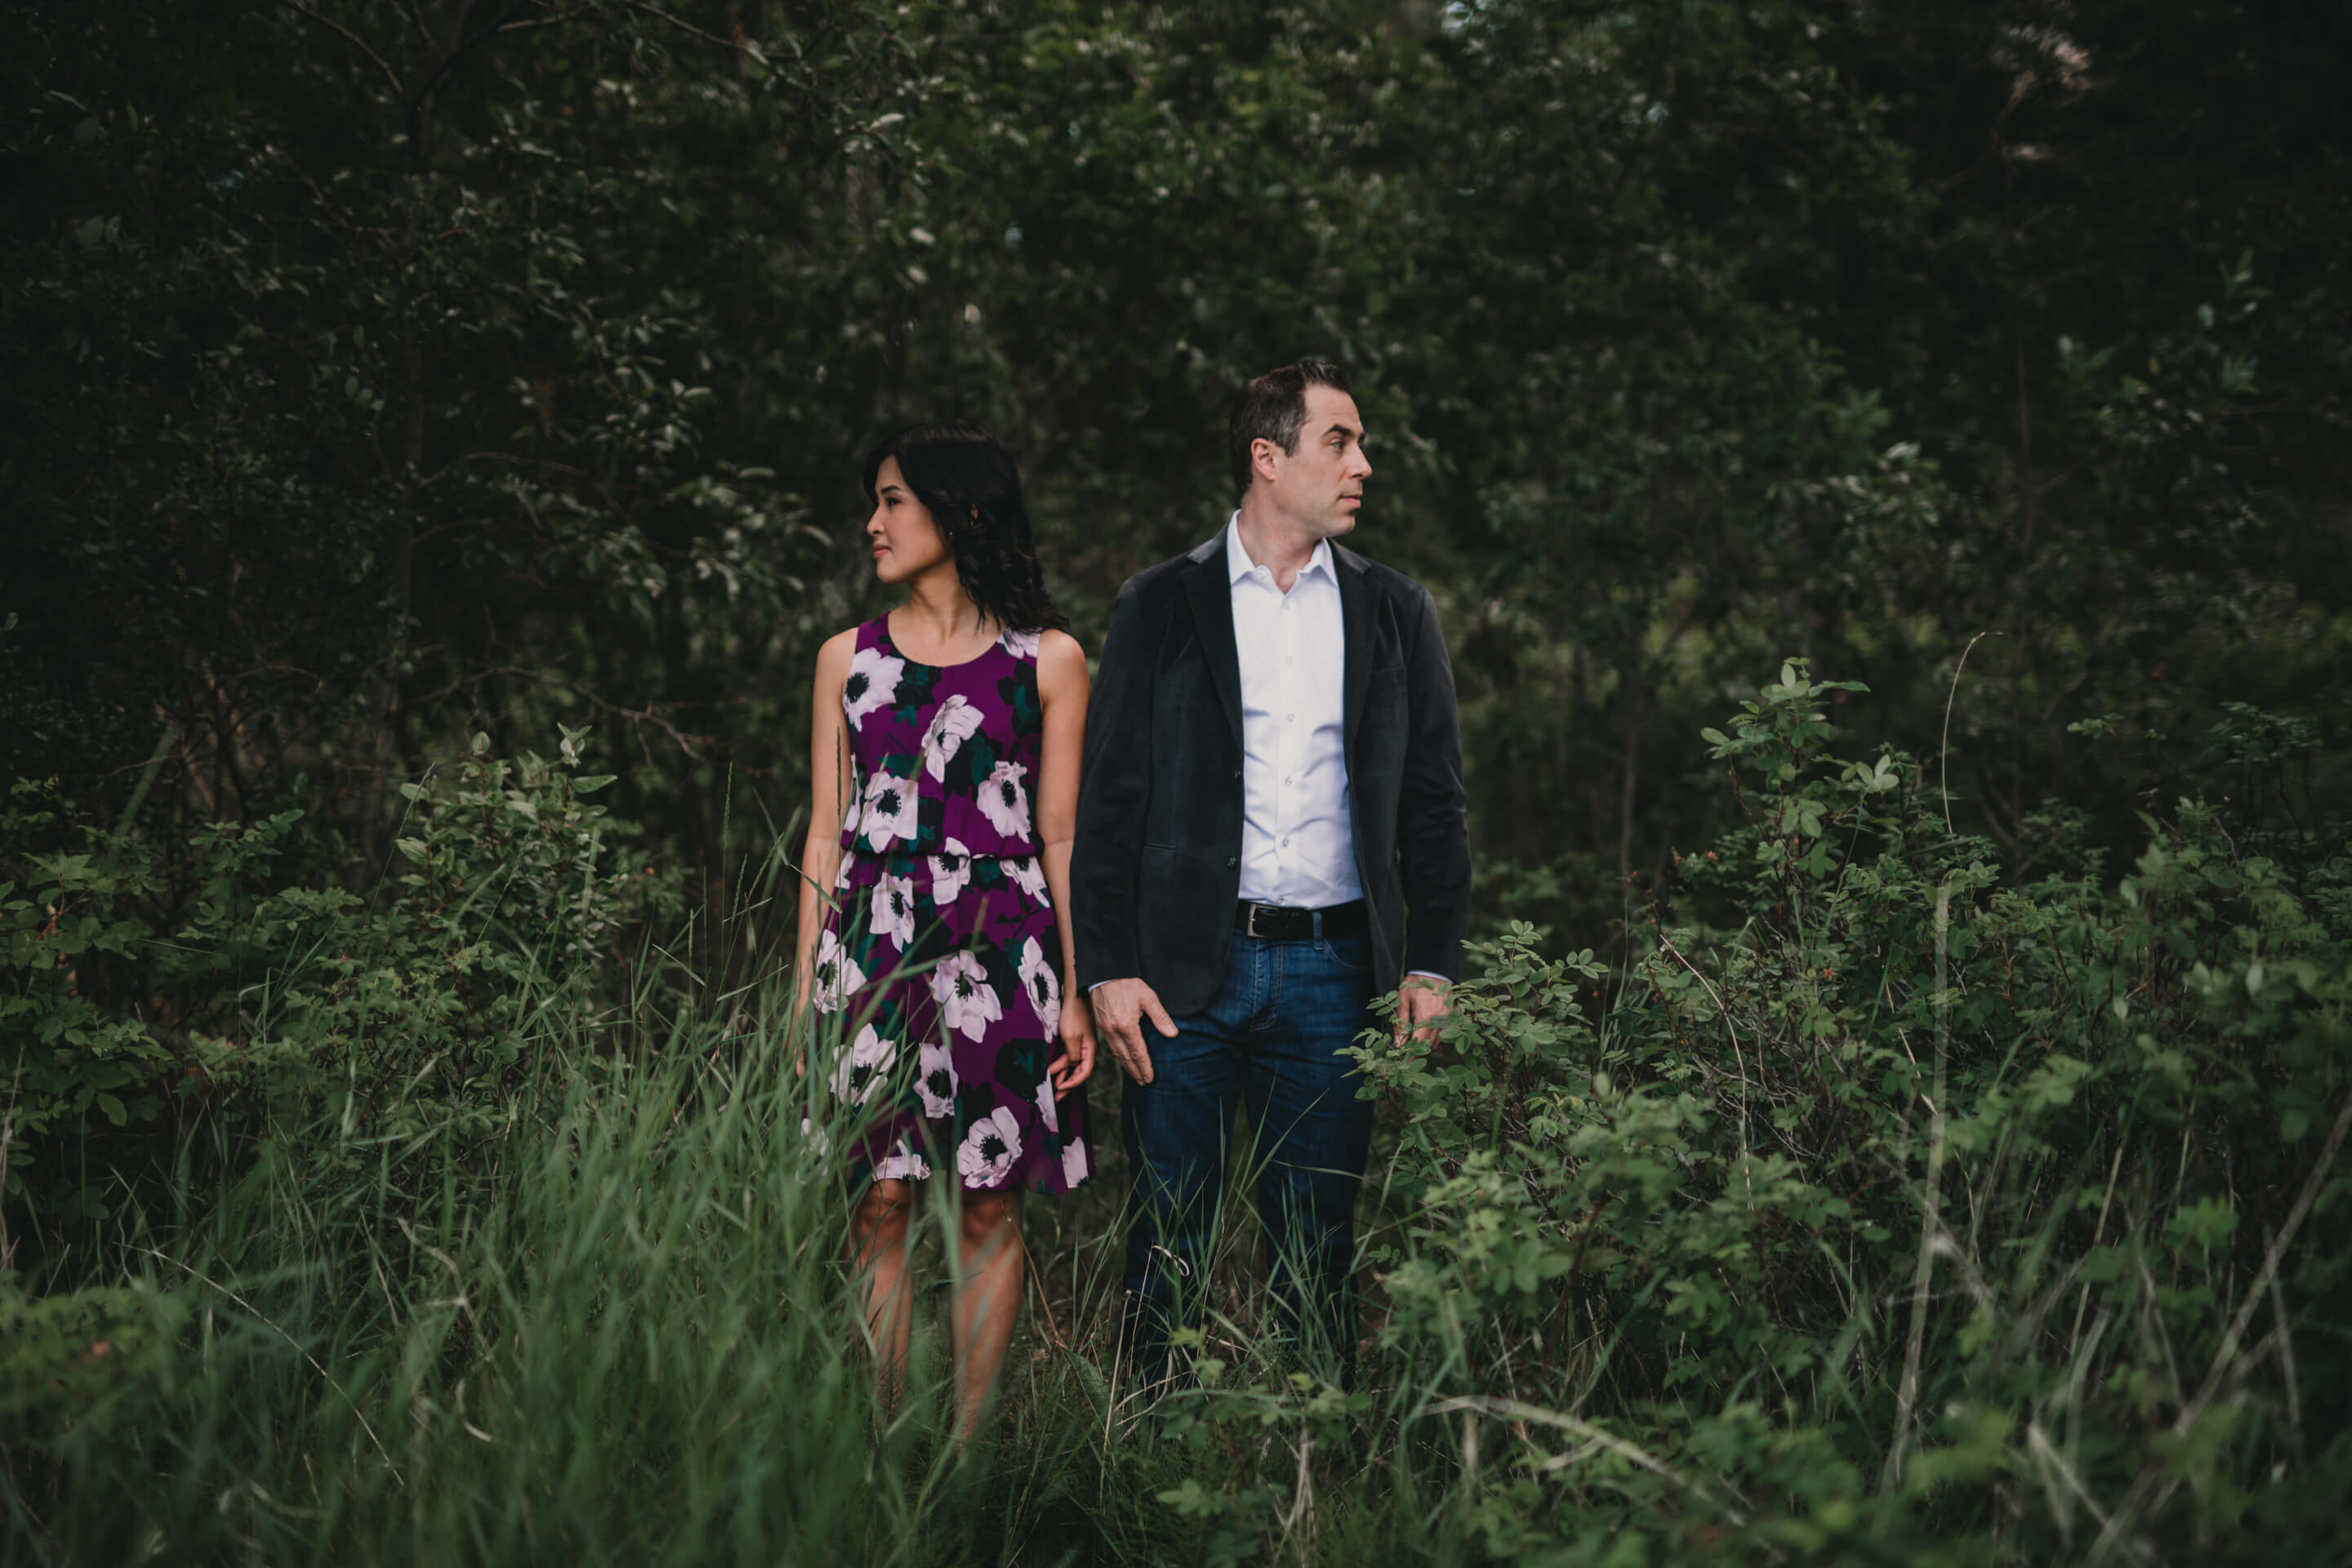 Wedding Photography Tips for Brides | Canmore Engagement Elopement Couples Photographer